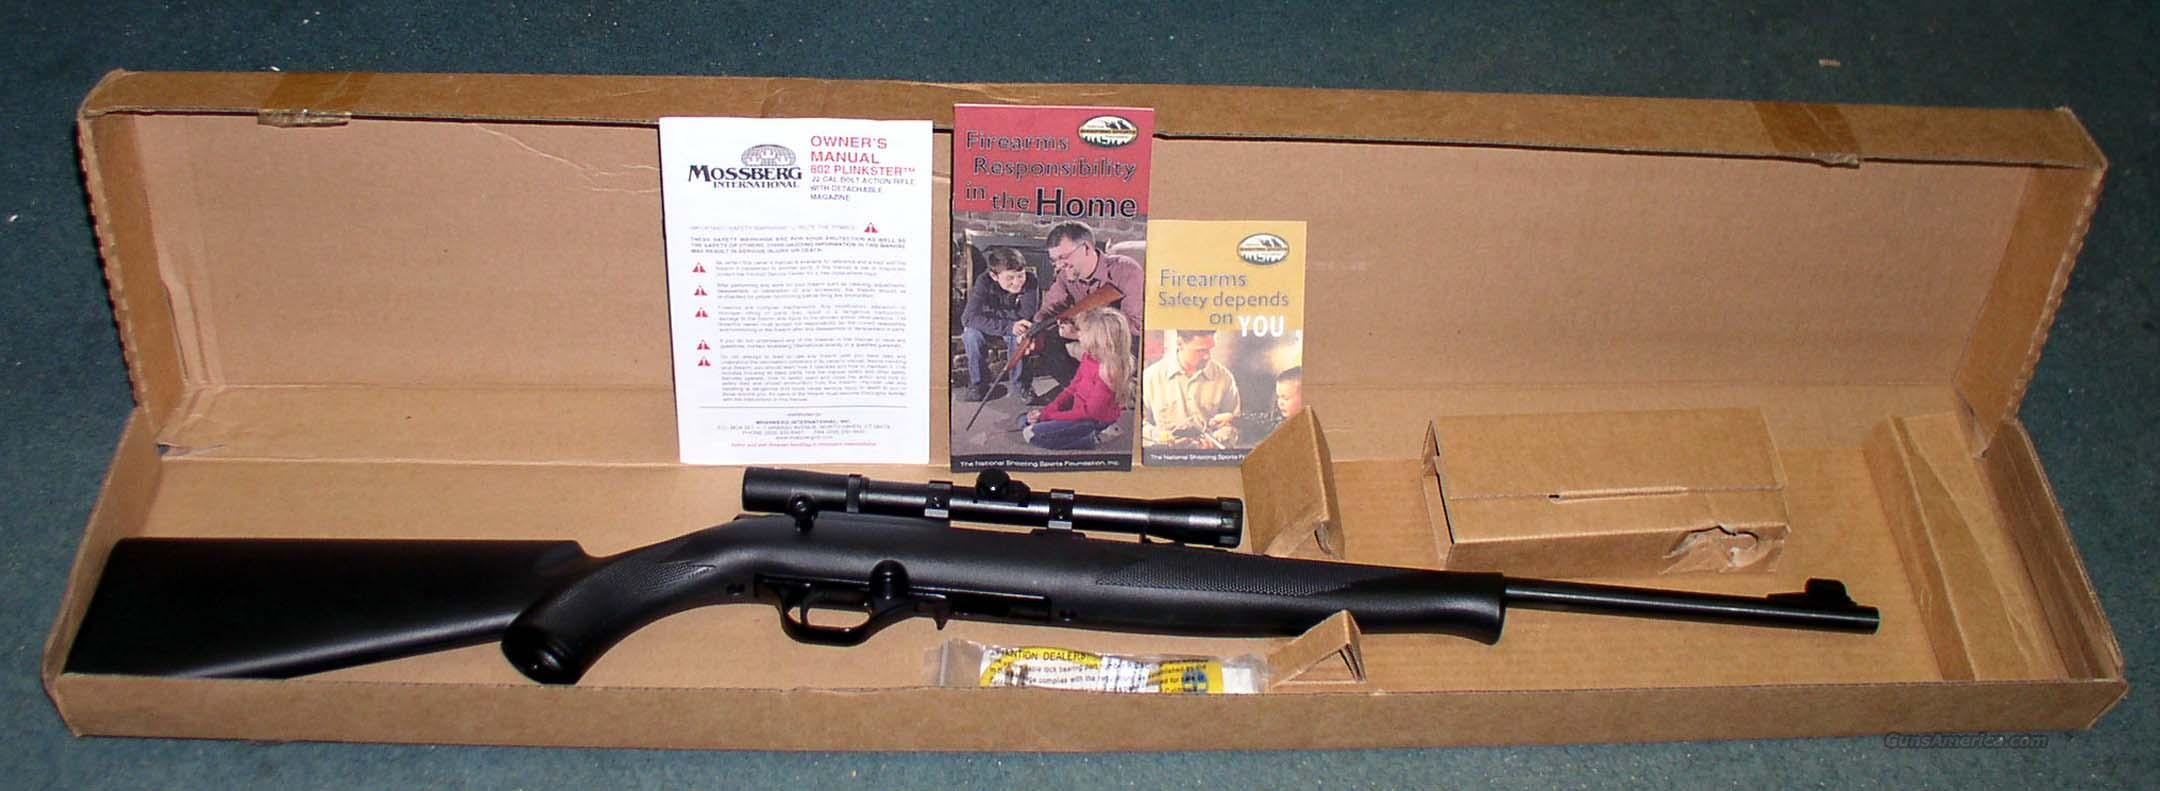 MOSSBERG MODEL 802 SEMI-AUTO .22 CAL RIMFIRE RIFLE  Guns > Rifles > Mossberg Rifles